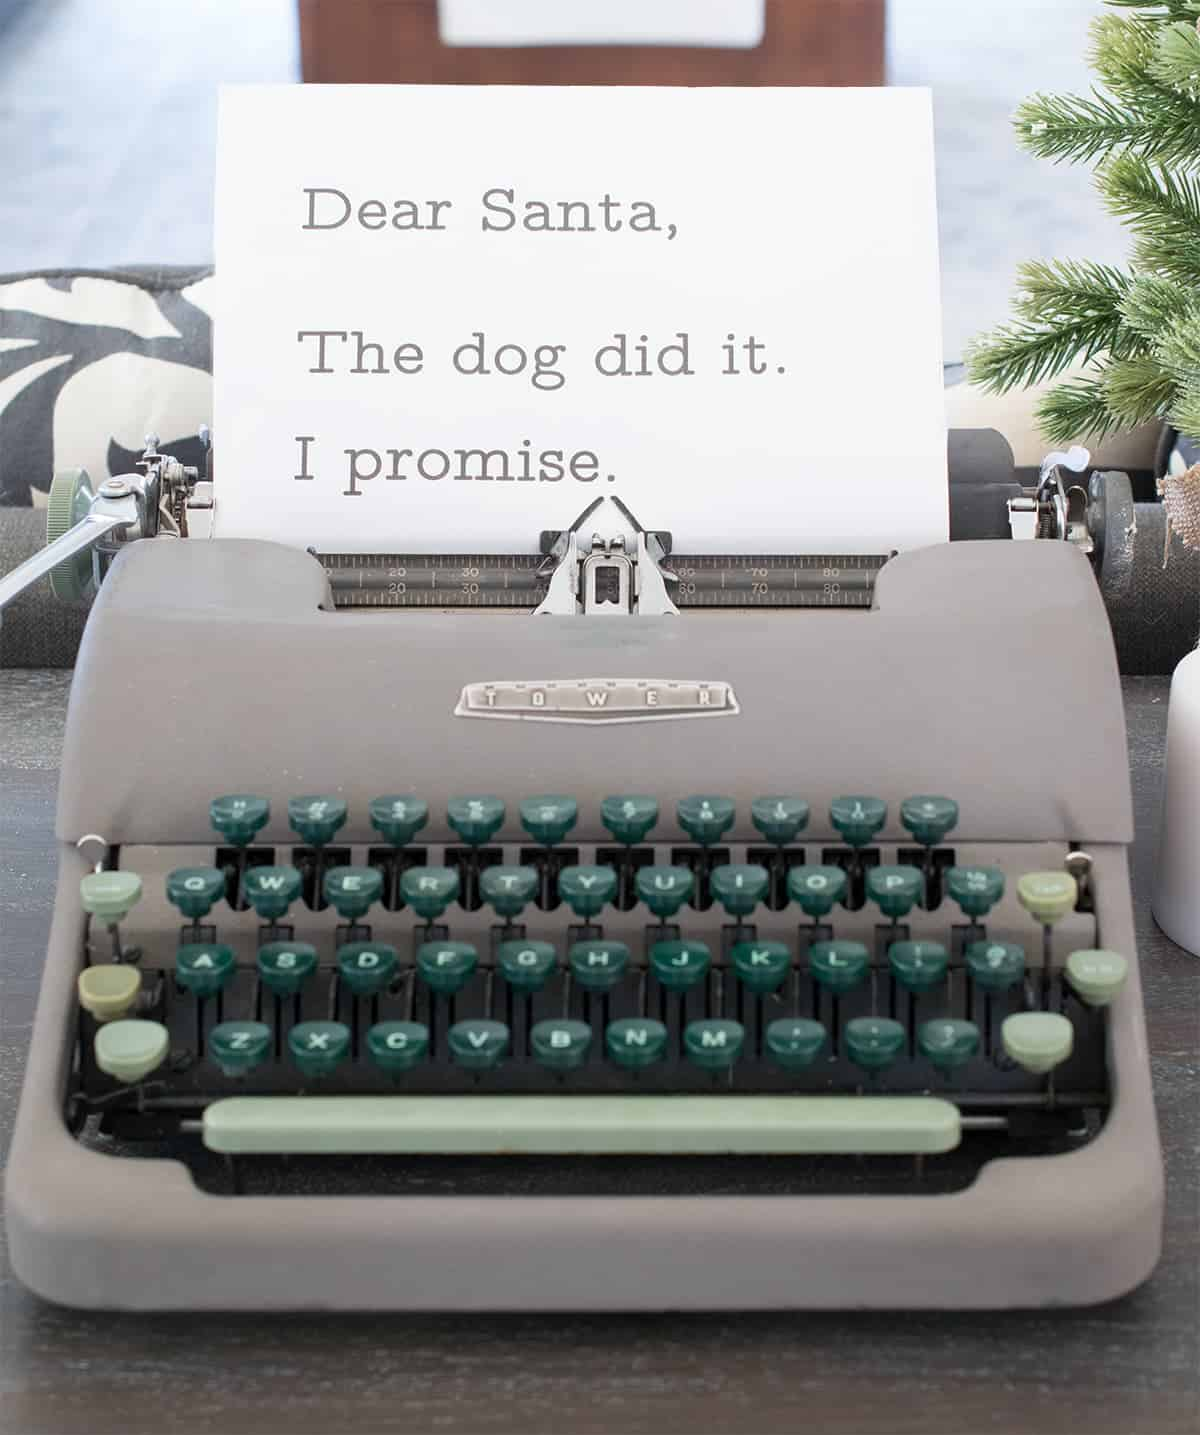 Antique typewriter christmas quote. Dear Santa, The dog did it. Always blaming the dog!